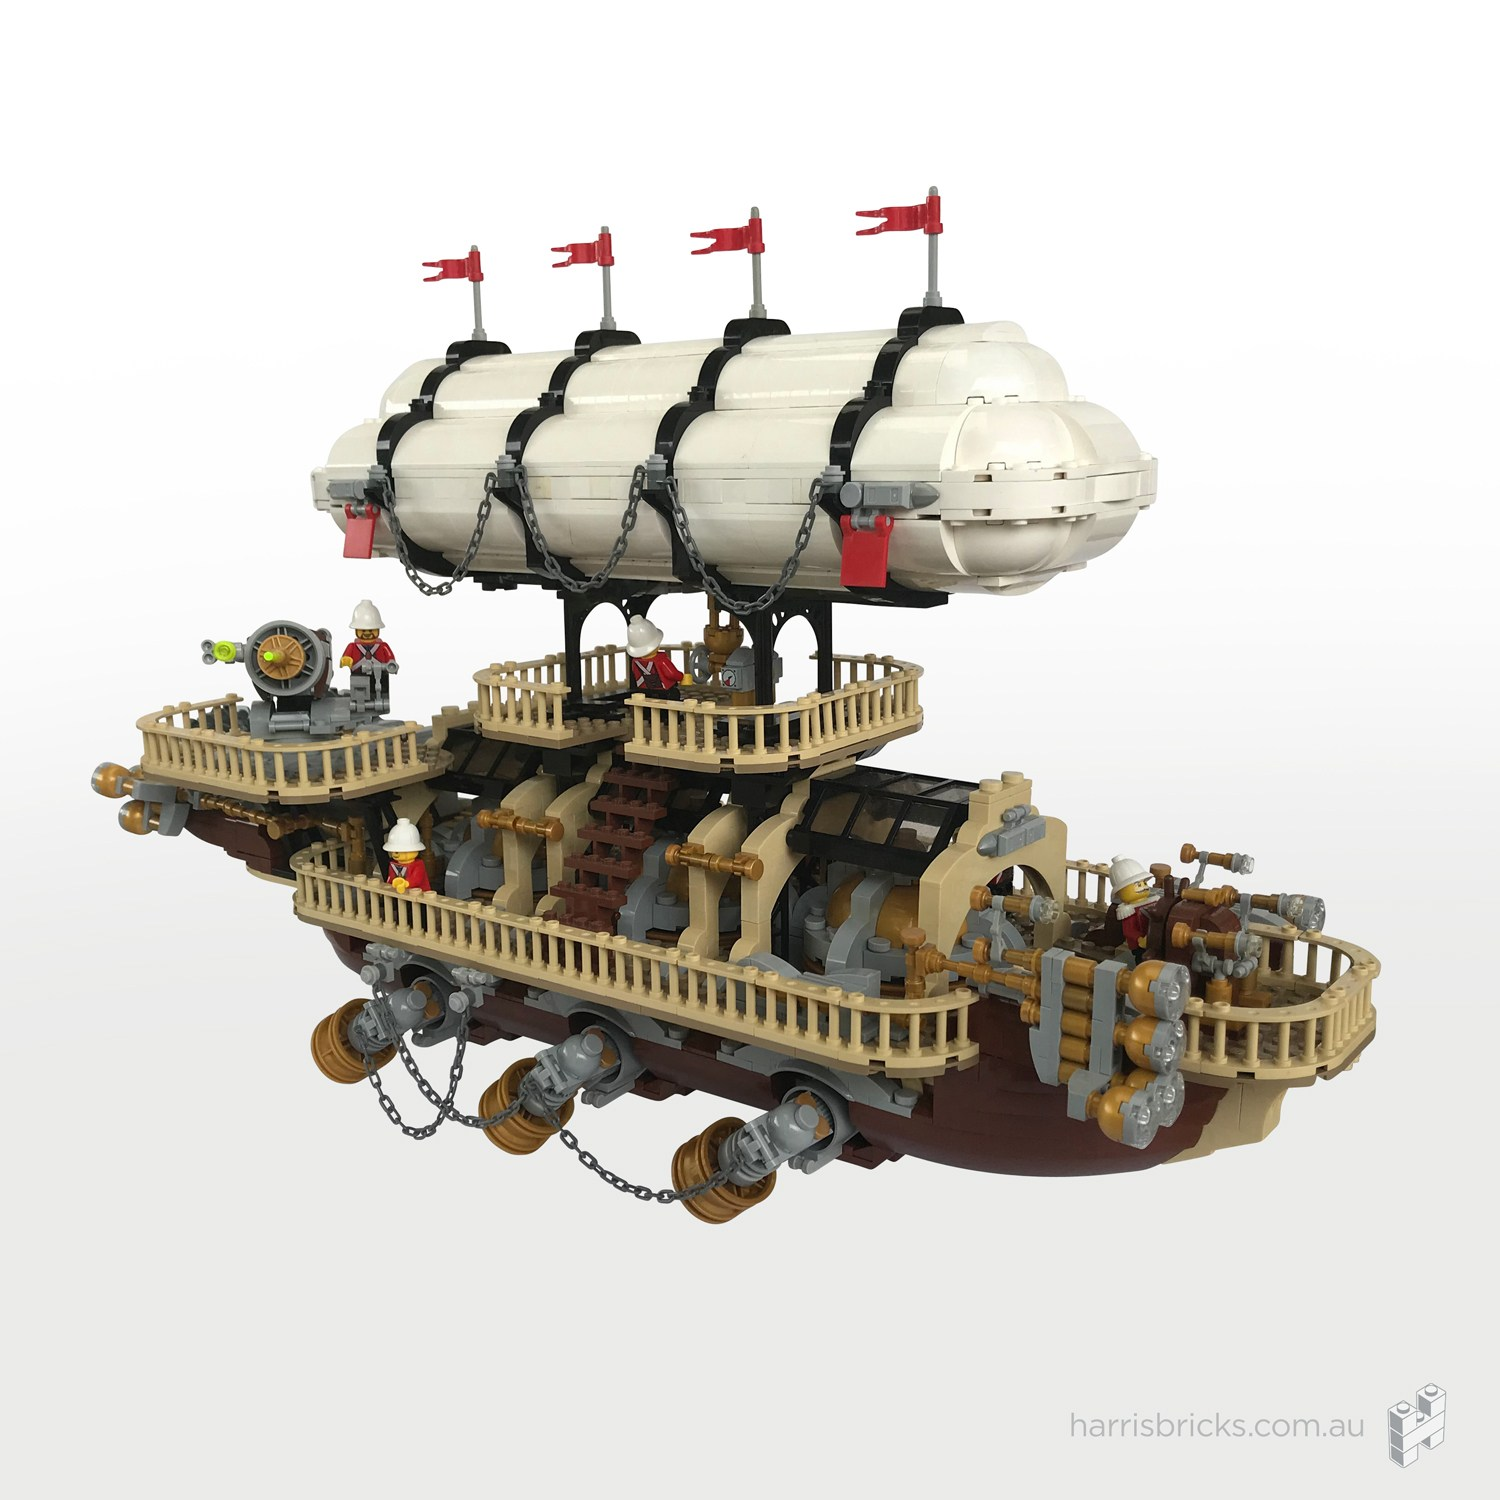 Imperial-Airship-Bricktania-Harris-Bricks-008.jpg